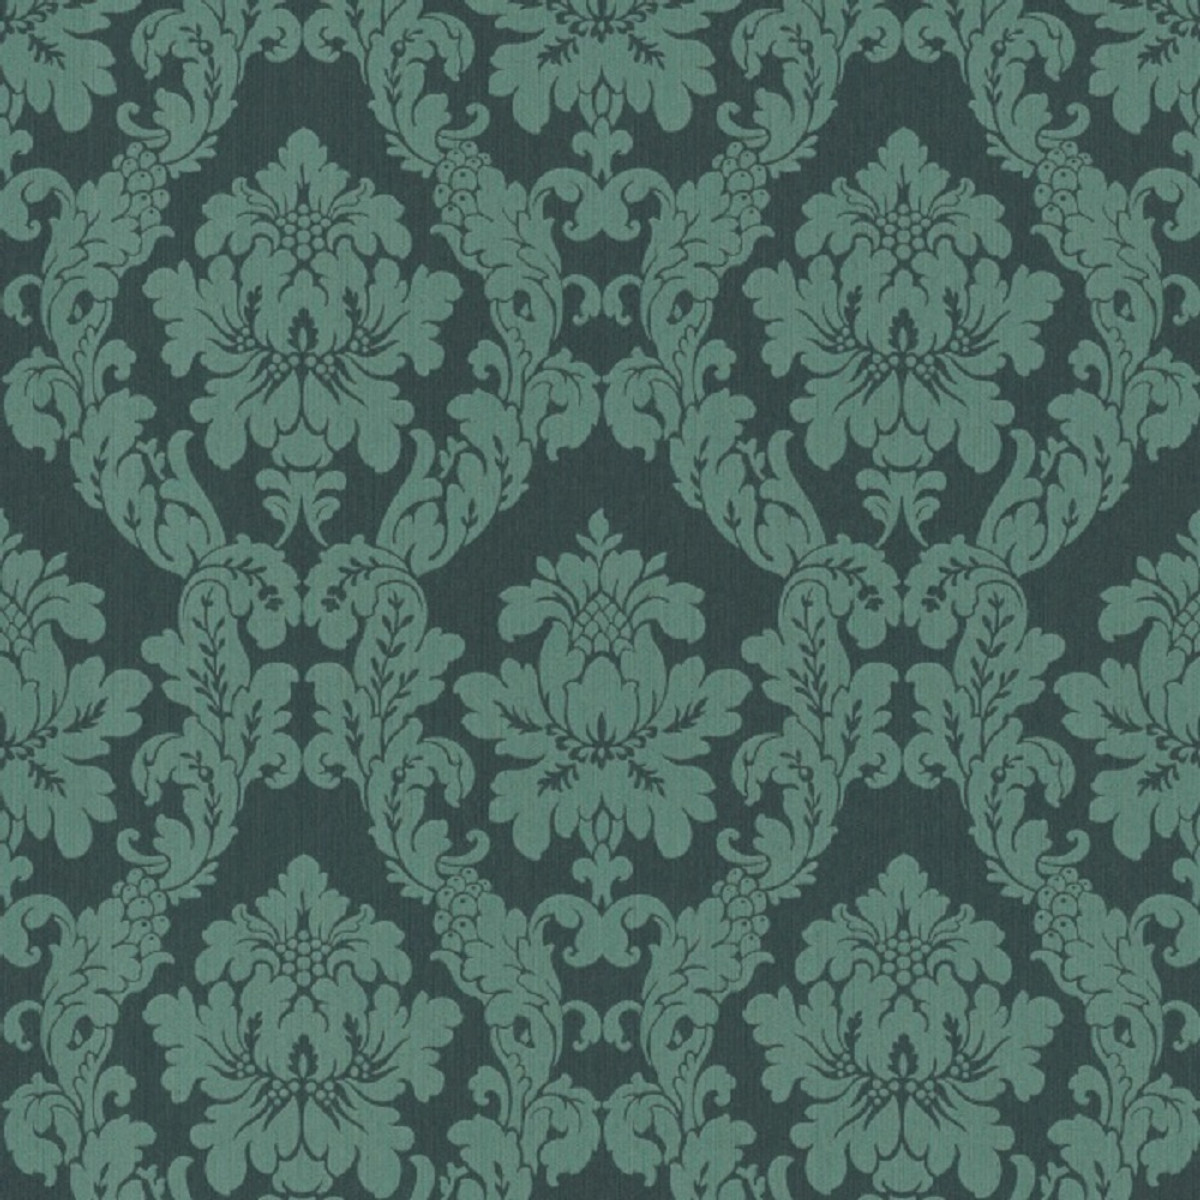 Casa Padrino Baroque Textile Wallpaper Green